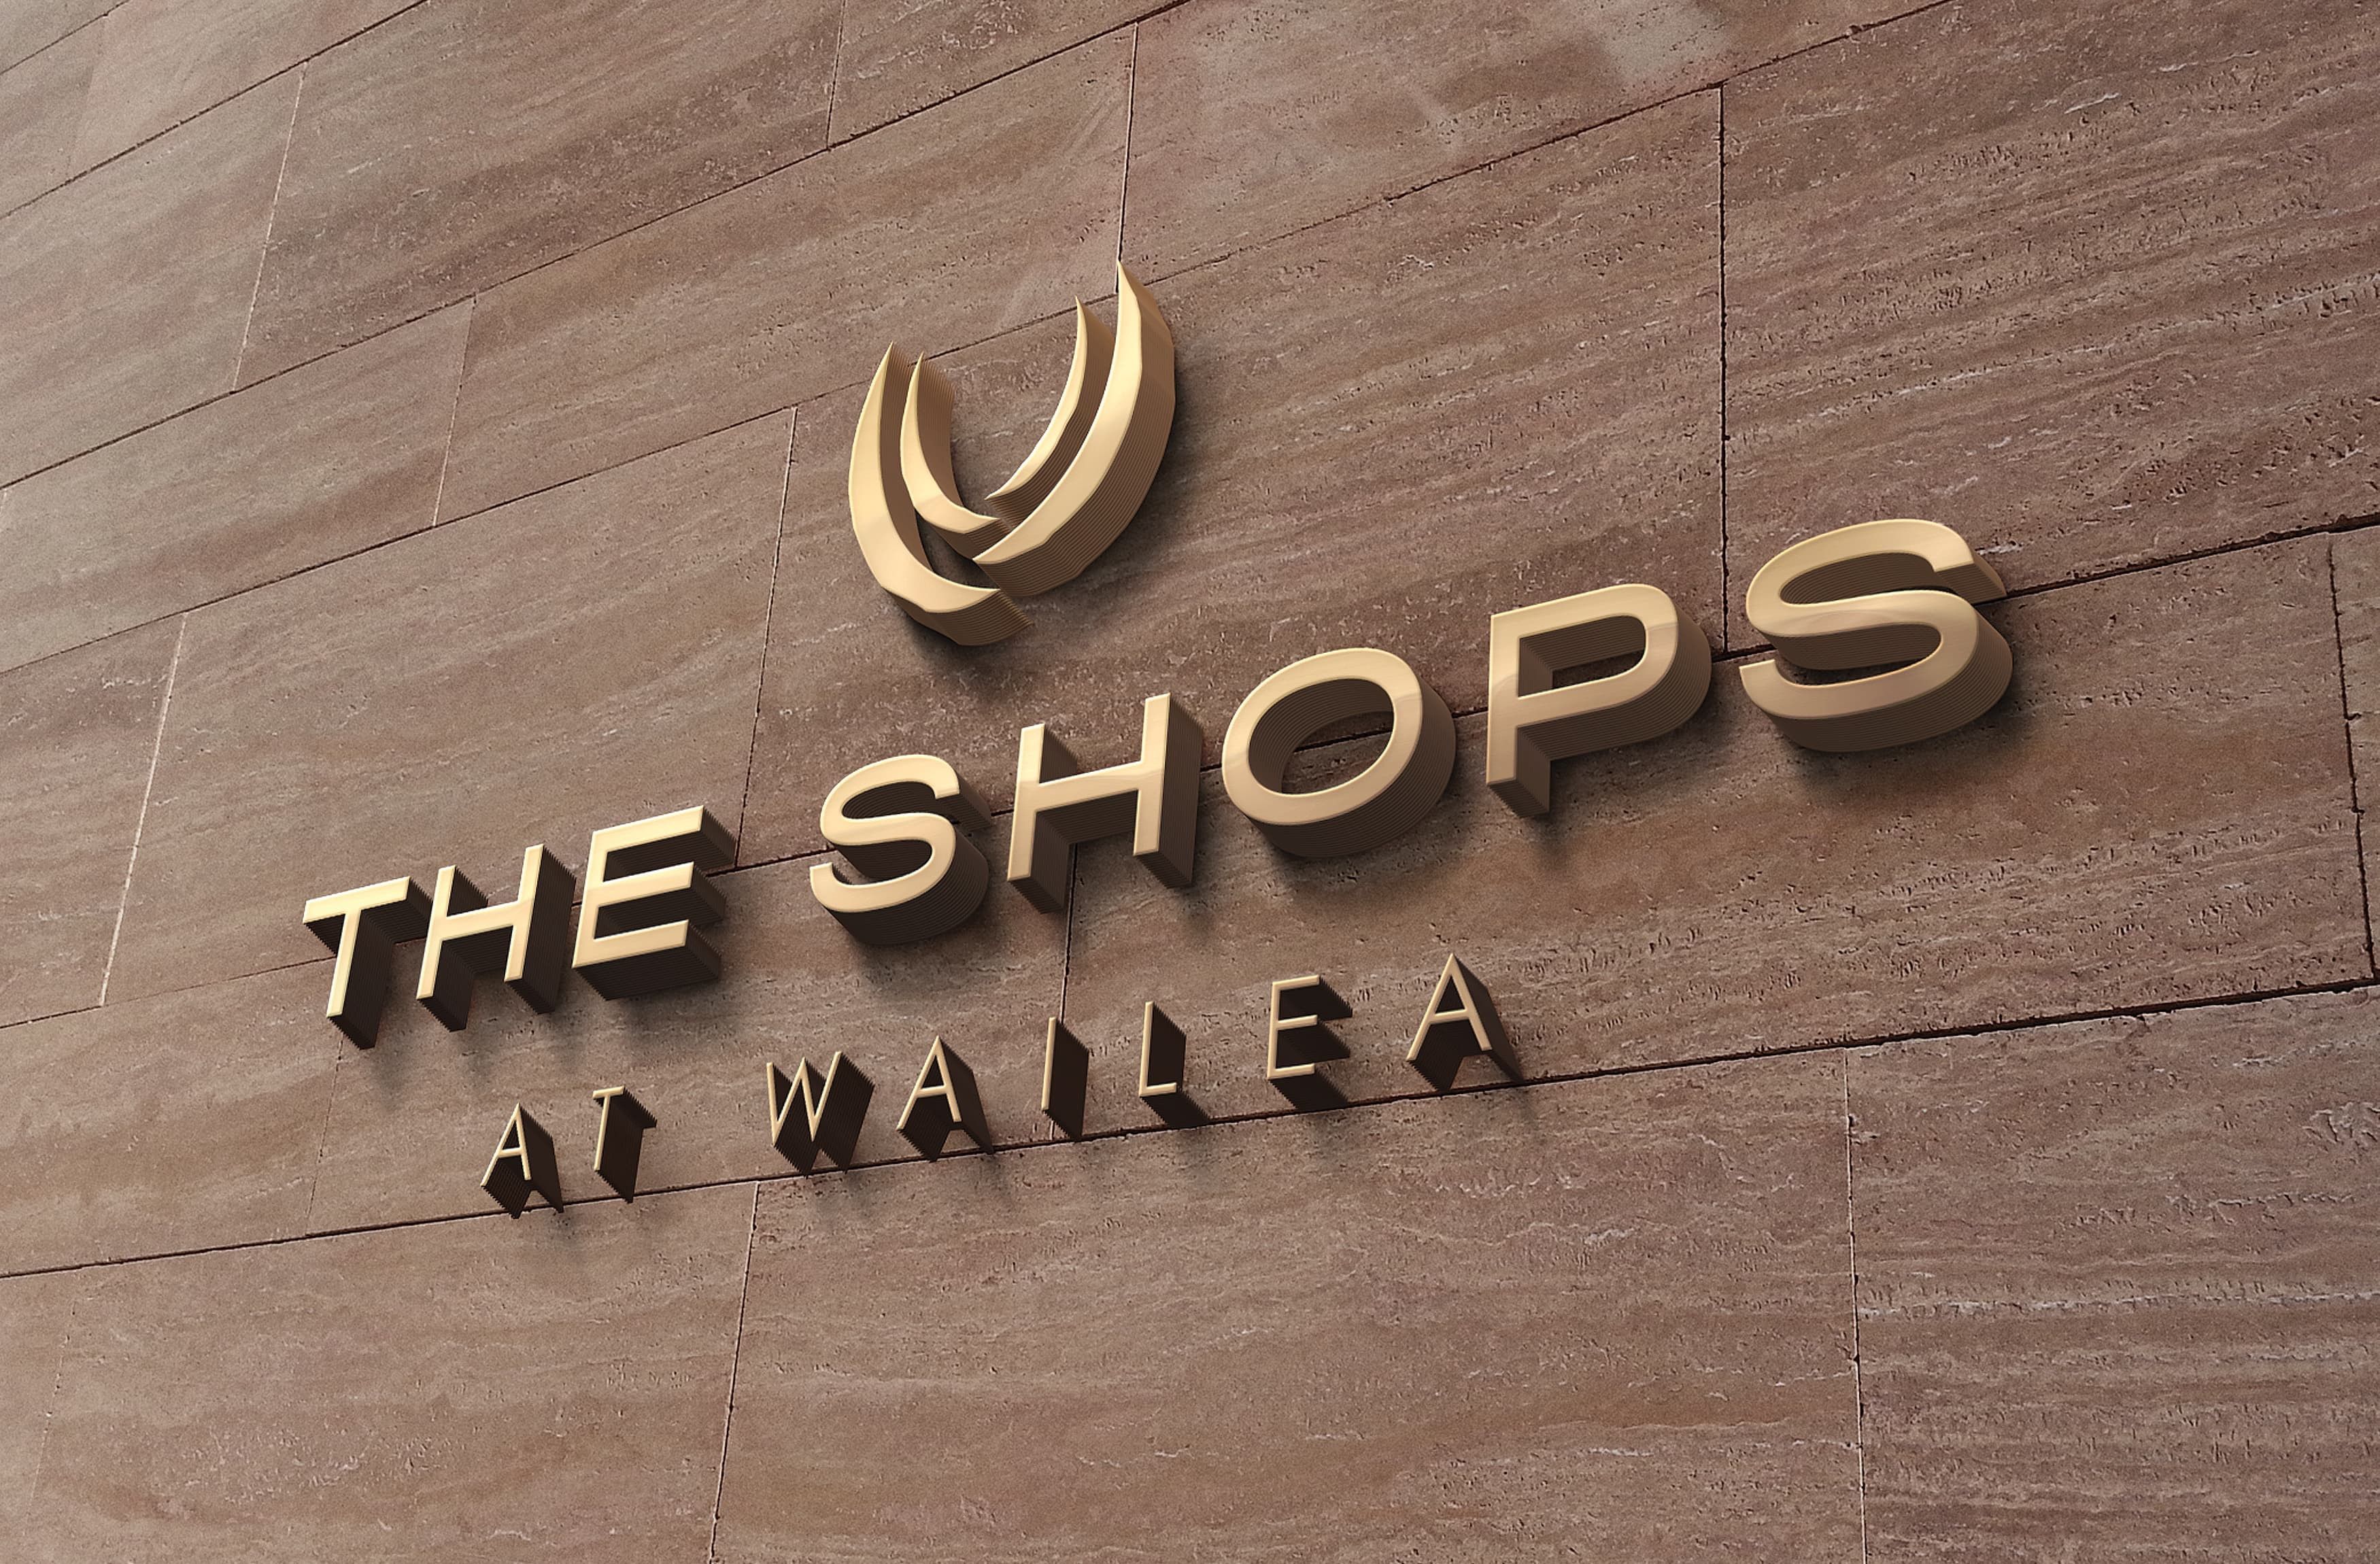 The Shops at Wailea, a premier shopping and dining destination. Branding and Logo Design. Brand Guidelines.